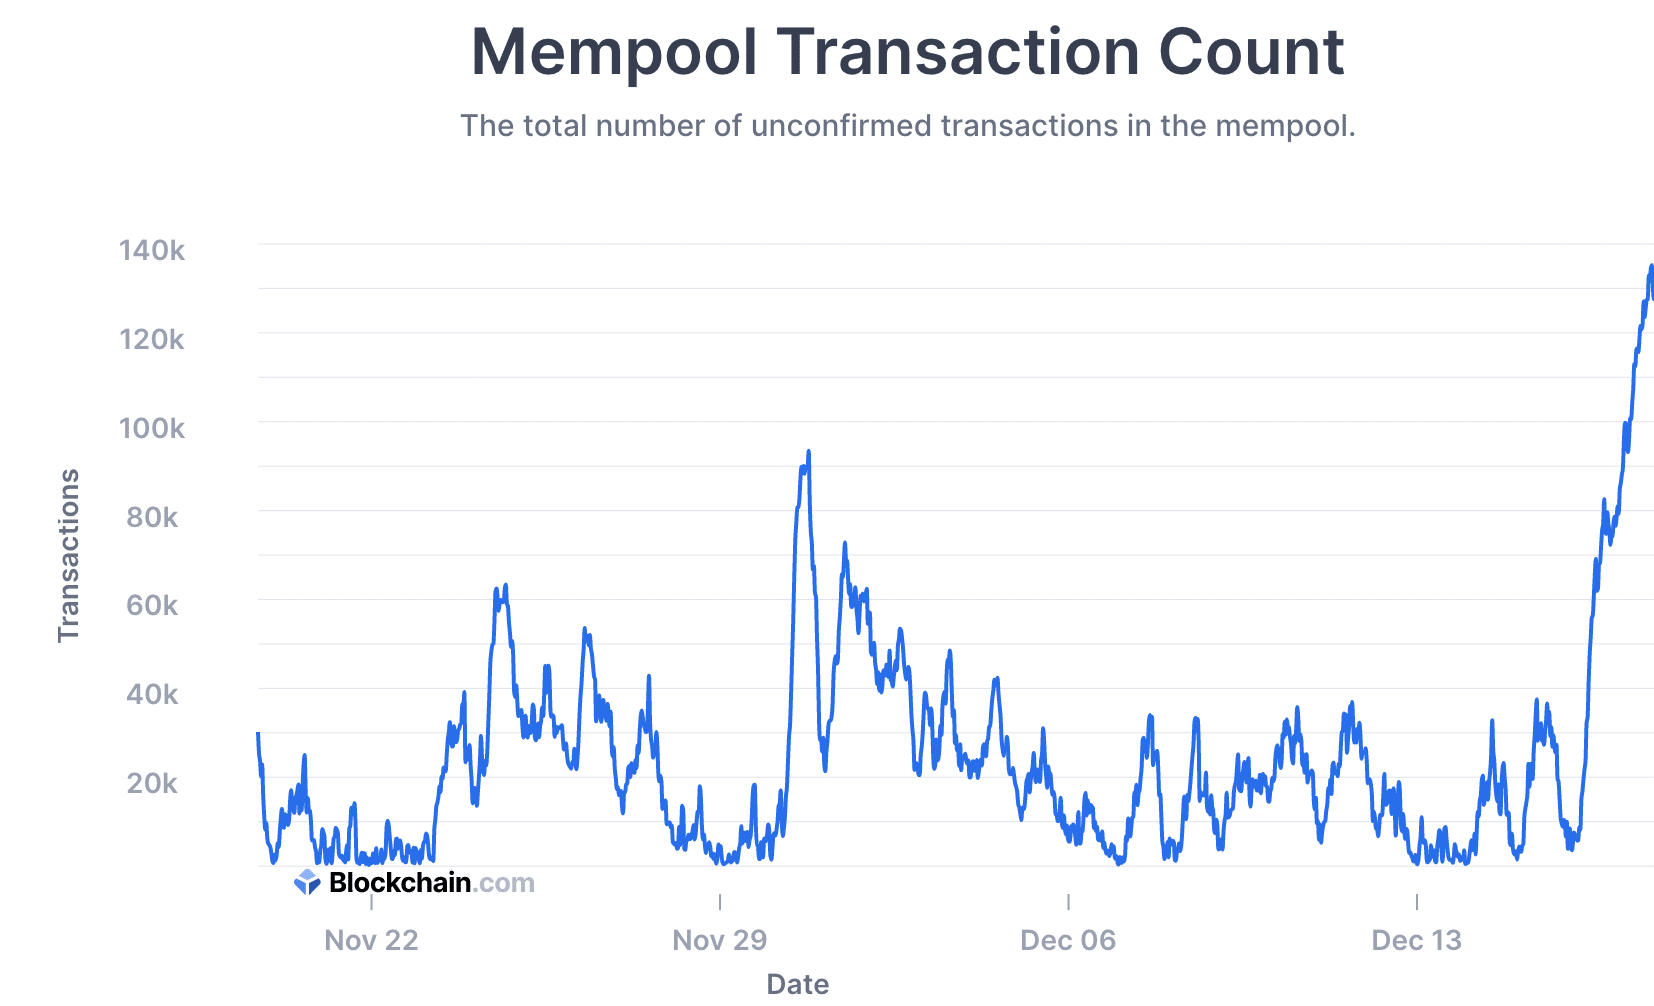 mempool transaction count